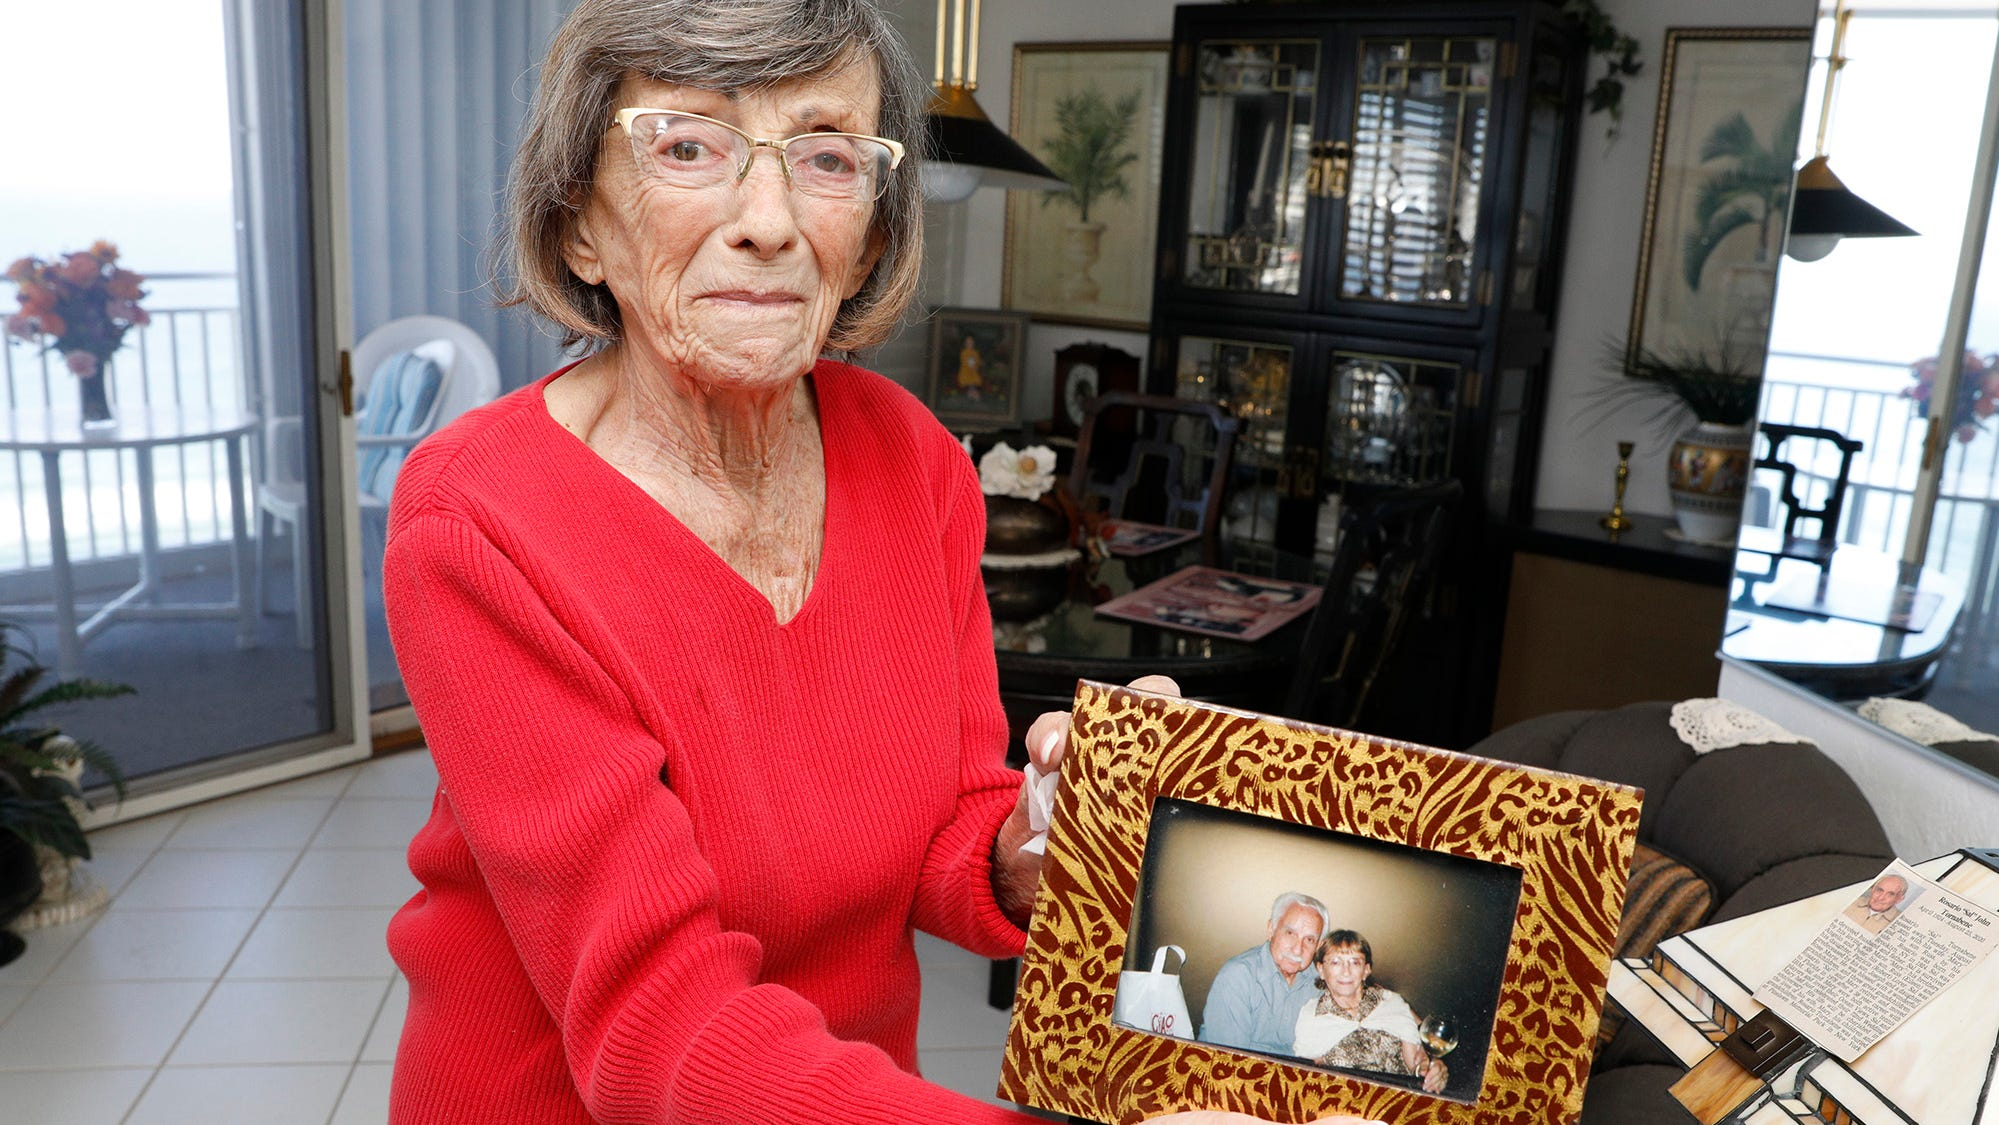 """Mary Tornabene, 92, shows a photo of her and her late husband, Sal, who died in August at age 96. She desperately wants to get the COVID vaccine so she can feel safe traveling to visit her only remaining family in New York. """"I won't go without a shot,"""" she said. """"It would put my life in danger and it would put others' lives in danger."""""""